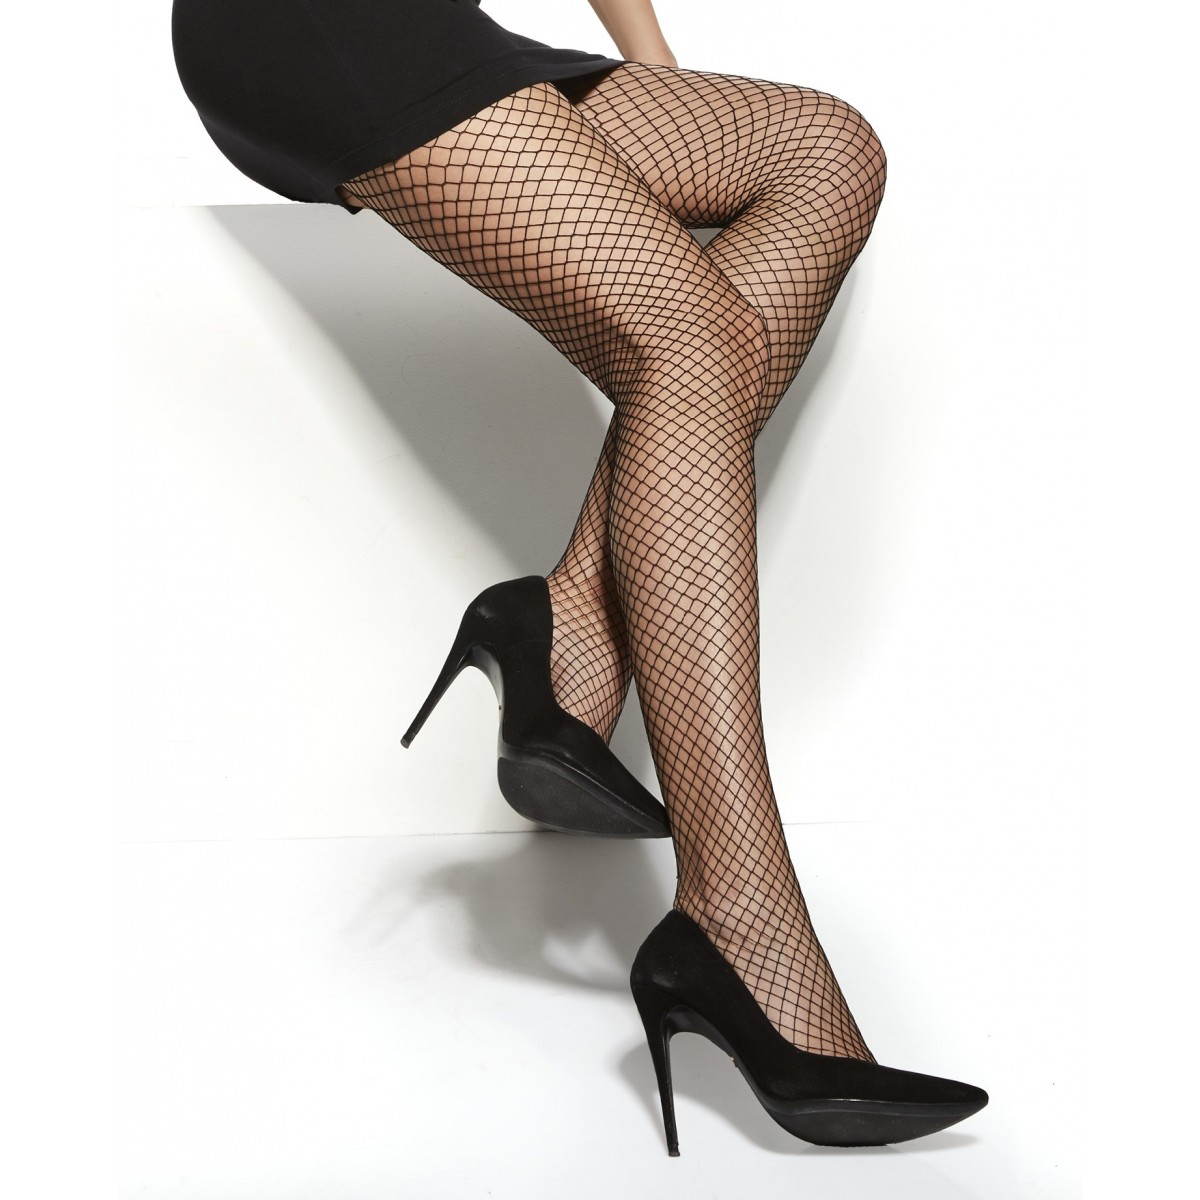 Fishnet Tights Black Small Scale Pantyhose Hosiery by Aurellie